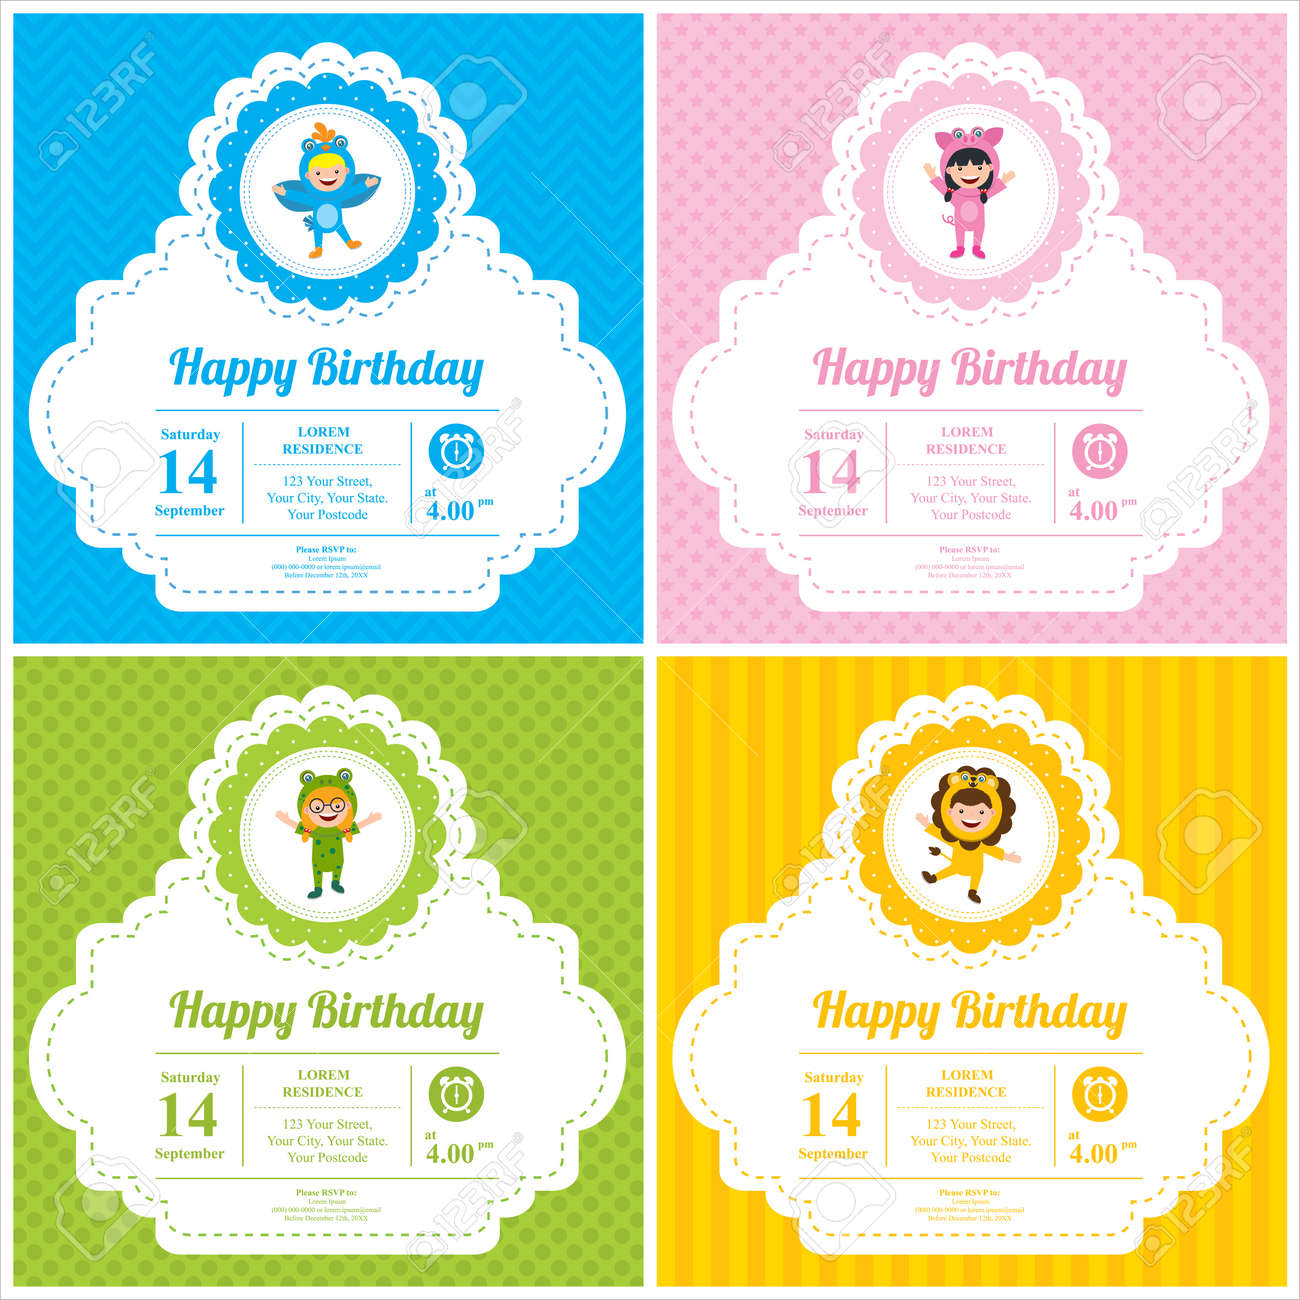 Birthday card with kids in animal costume - 96836973